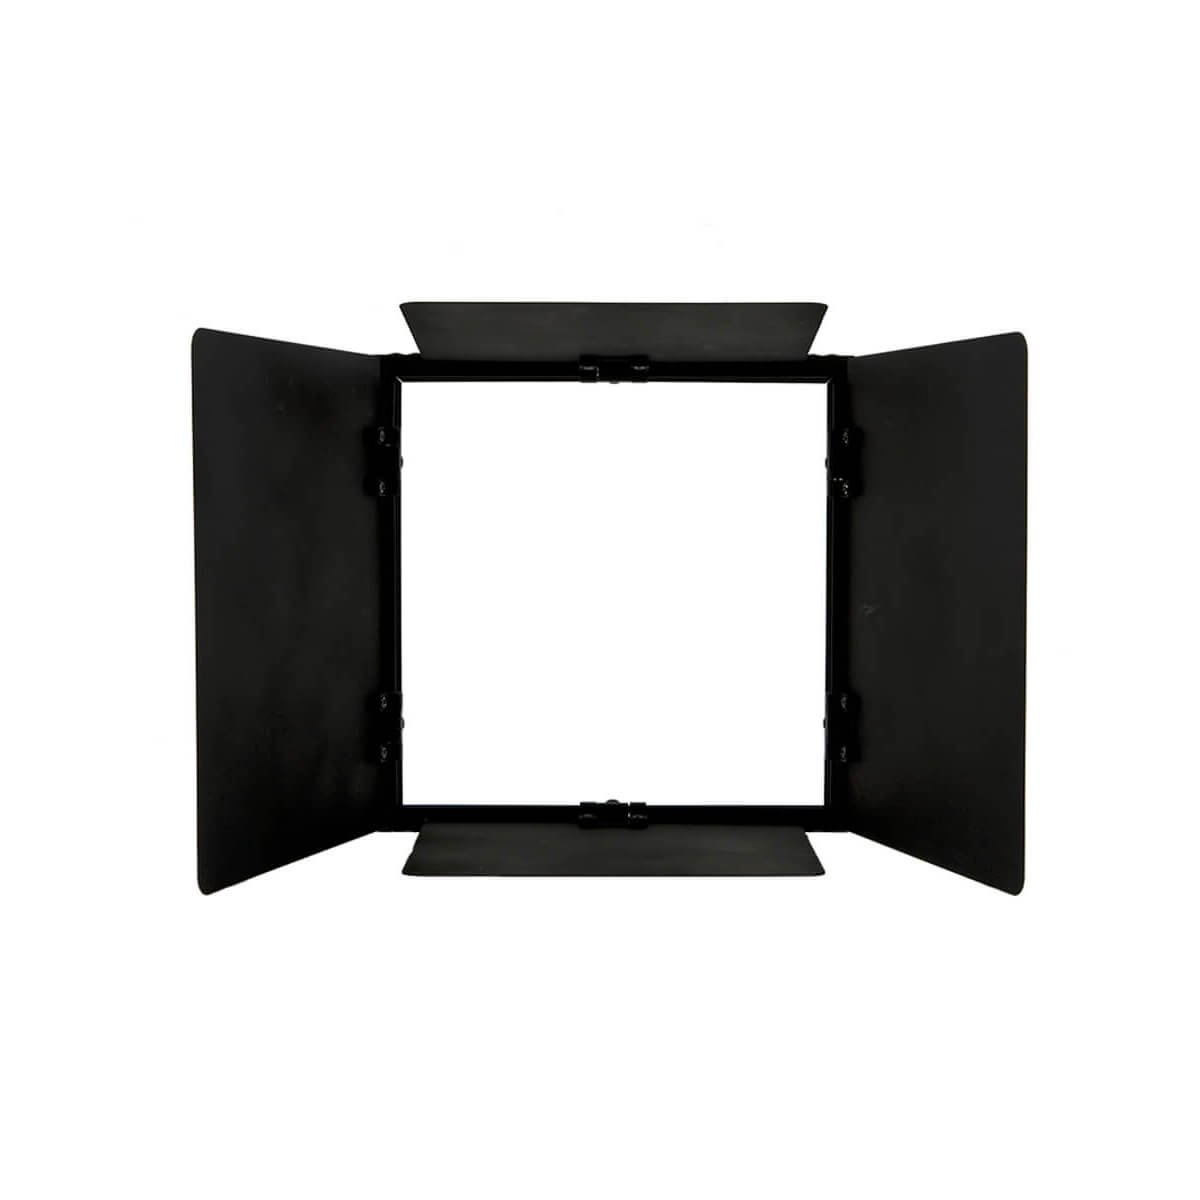 Litepanels 900-3021  1x1 4-Way Barndoors 900-3021